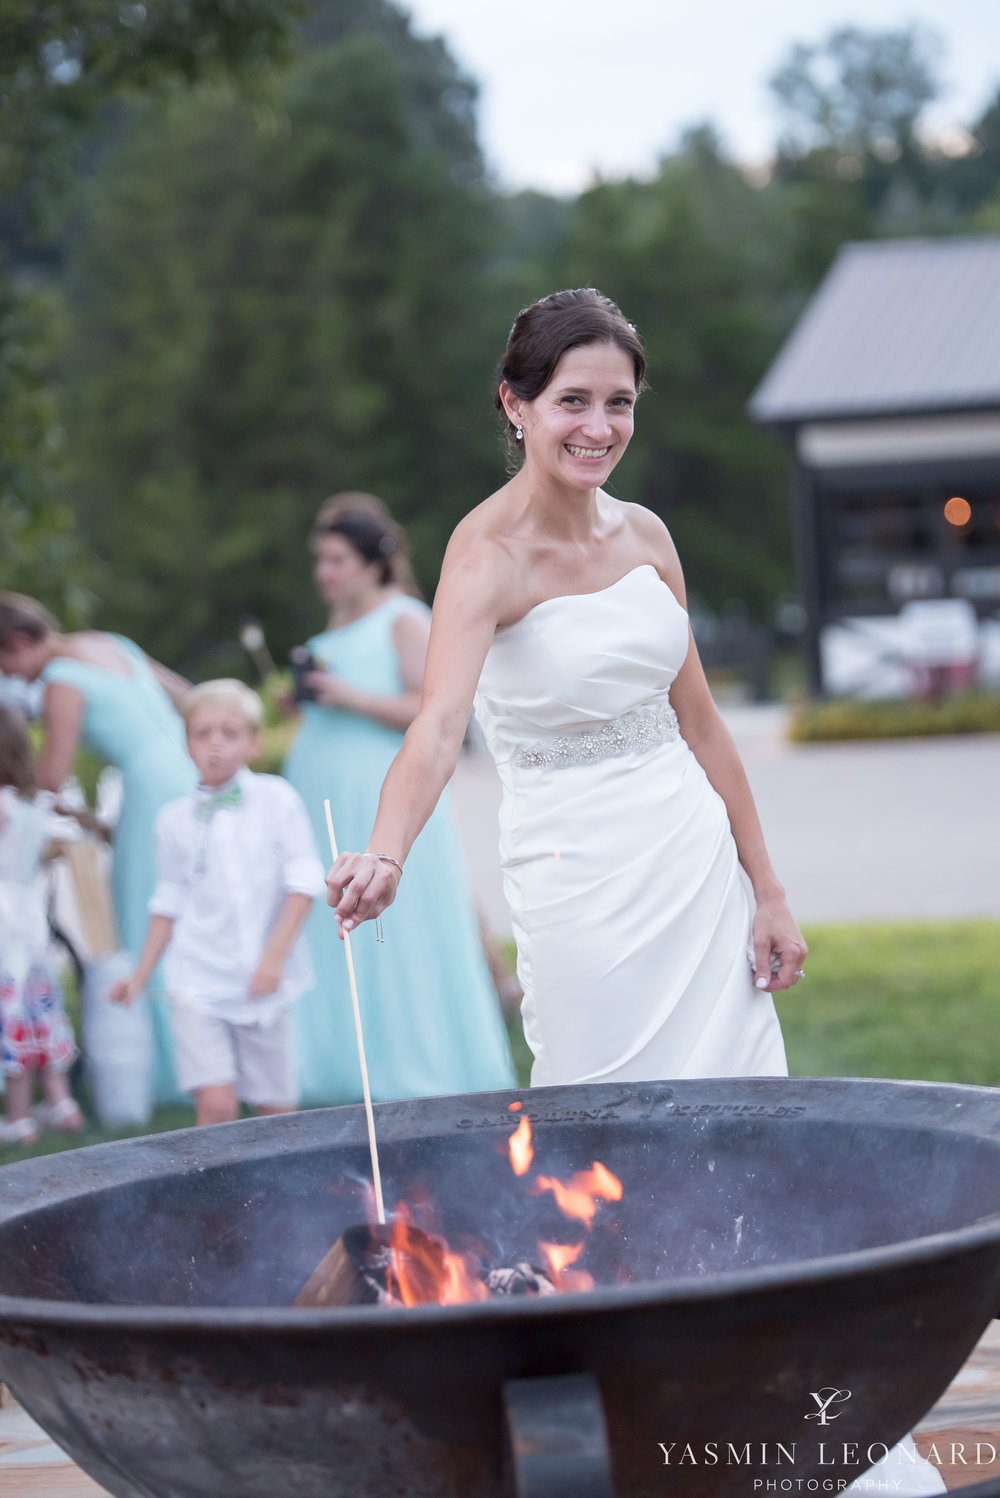 Sara and Nathan | Summerfield Farms | Yasmin Leonard Photography-69.jpg